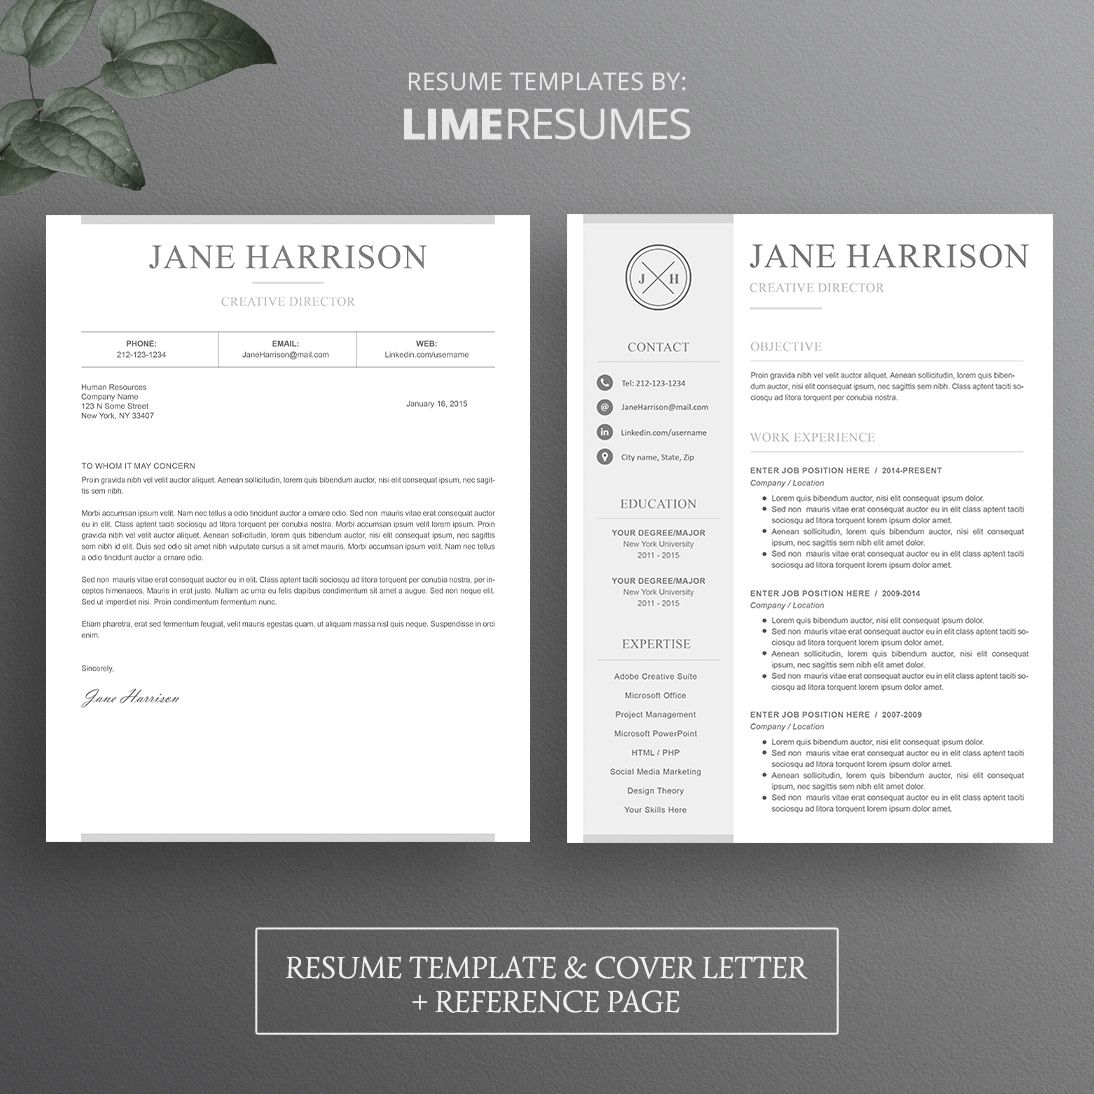 Microsoft Word Resume Template, Cover